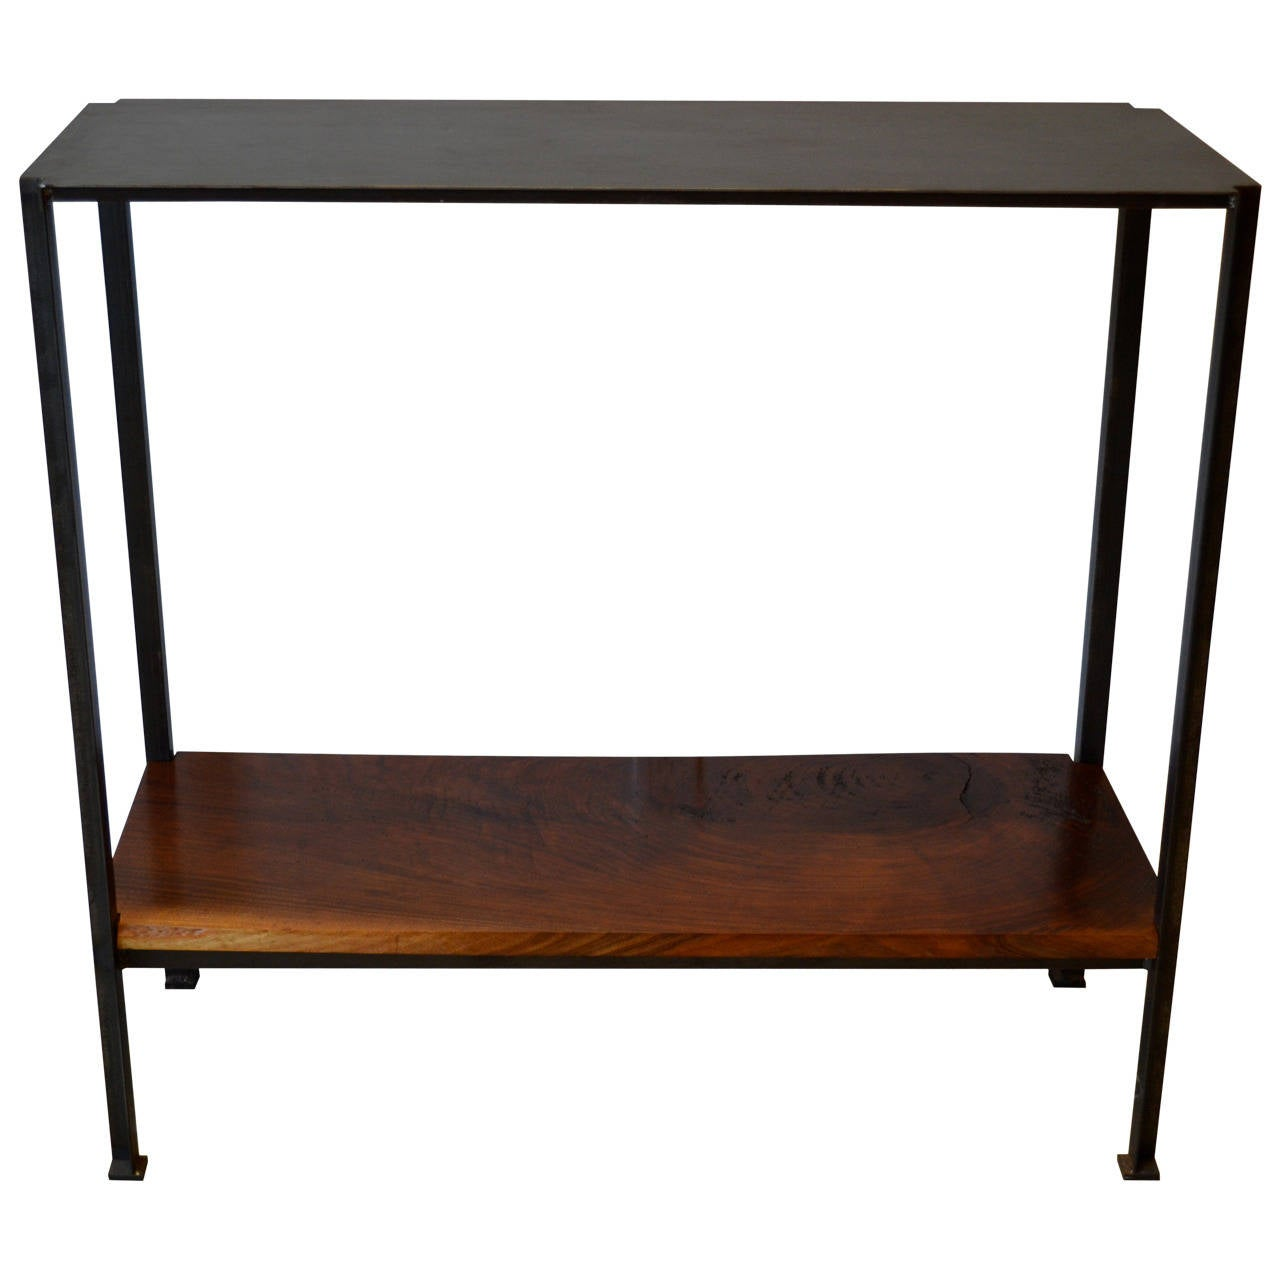 Foyer Furniture For Sale : Industrail metal foyer table with walnut shelf at stdibs